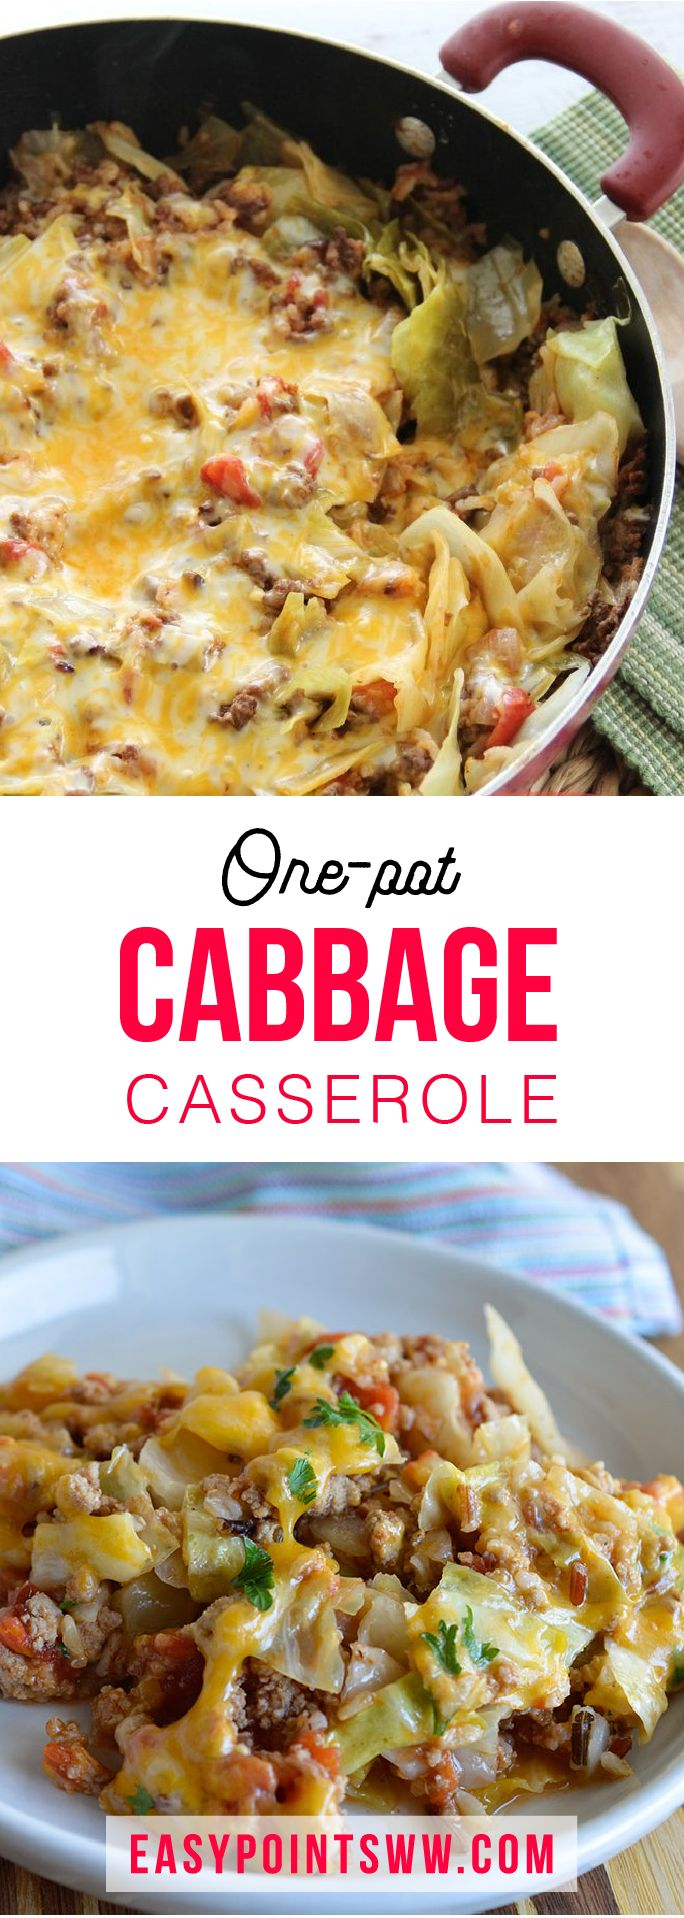 WEIGHT WATCHERS ONE-POT CABBAGE CASSEROLE ♥